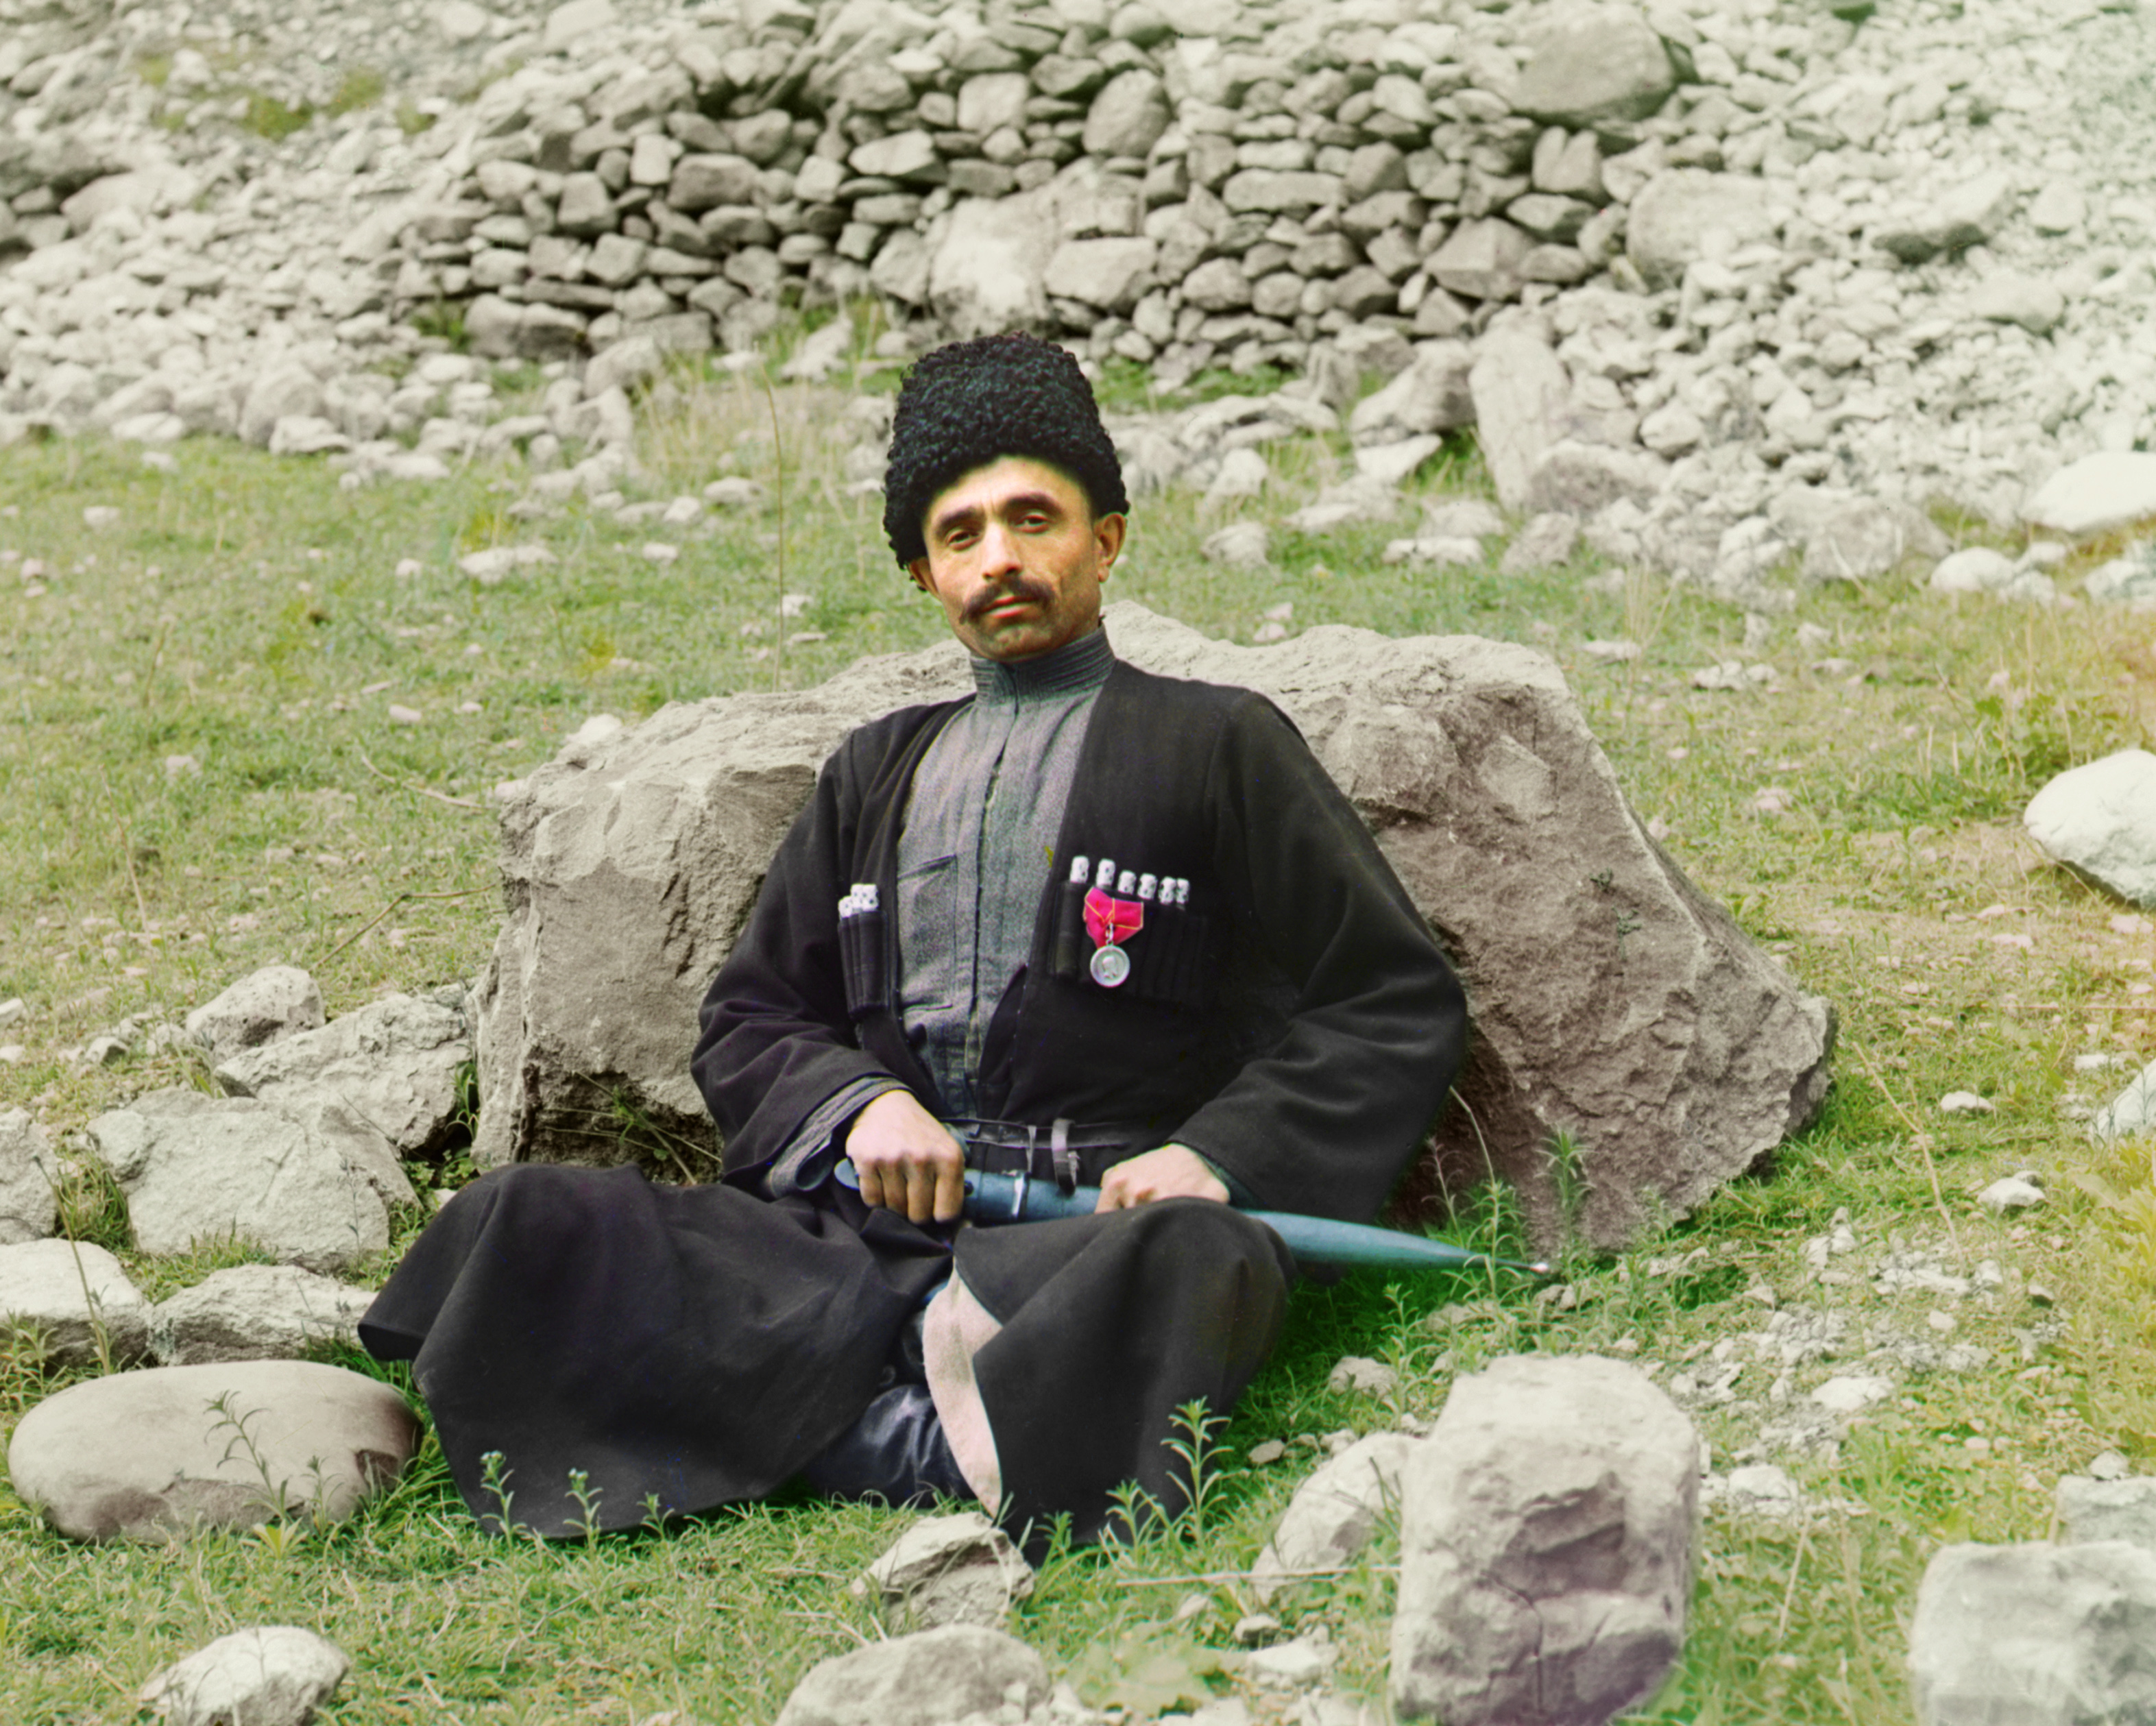 http://upload.wikimedia.org/wikipedia/commons/9/9a/Sunni_Muslim_man_wearing_traditional_dress_and_headgear.jpg